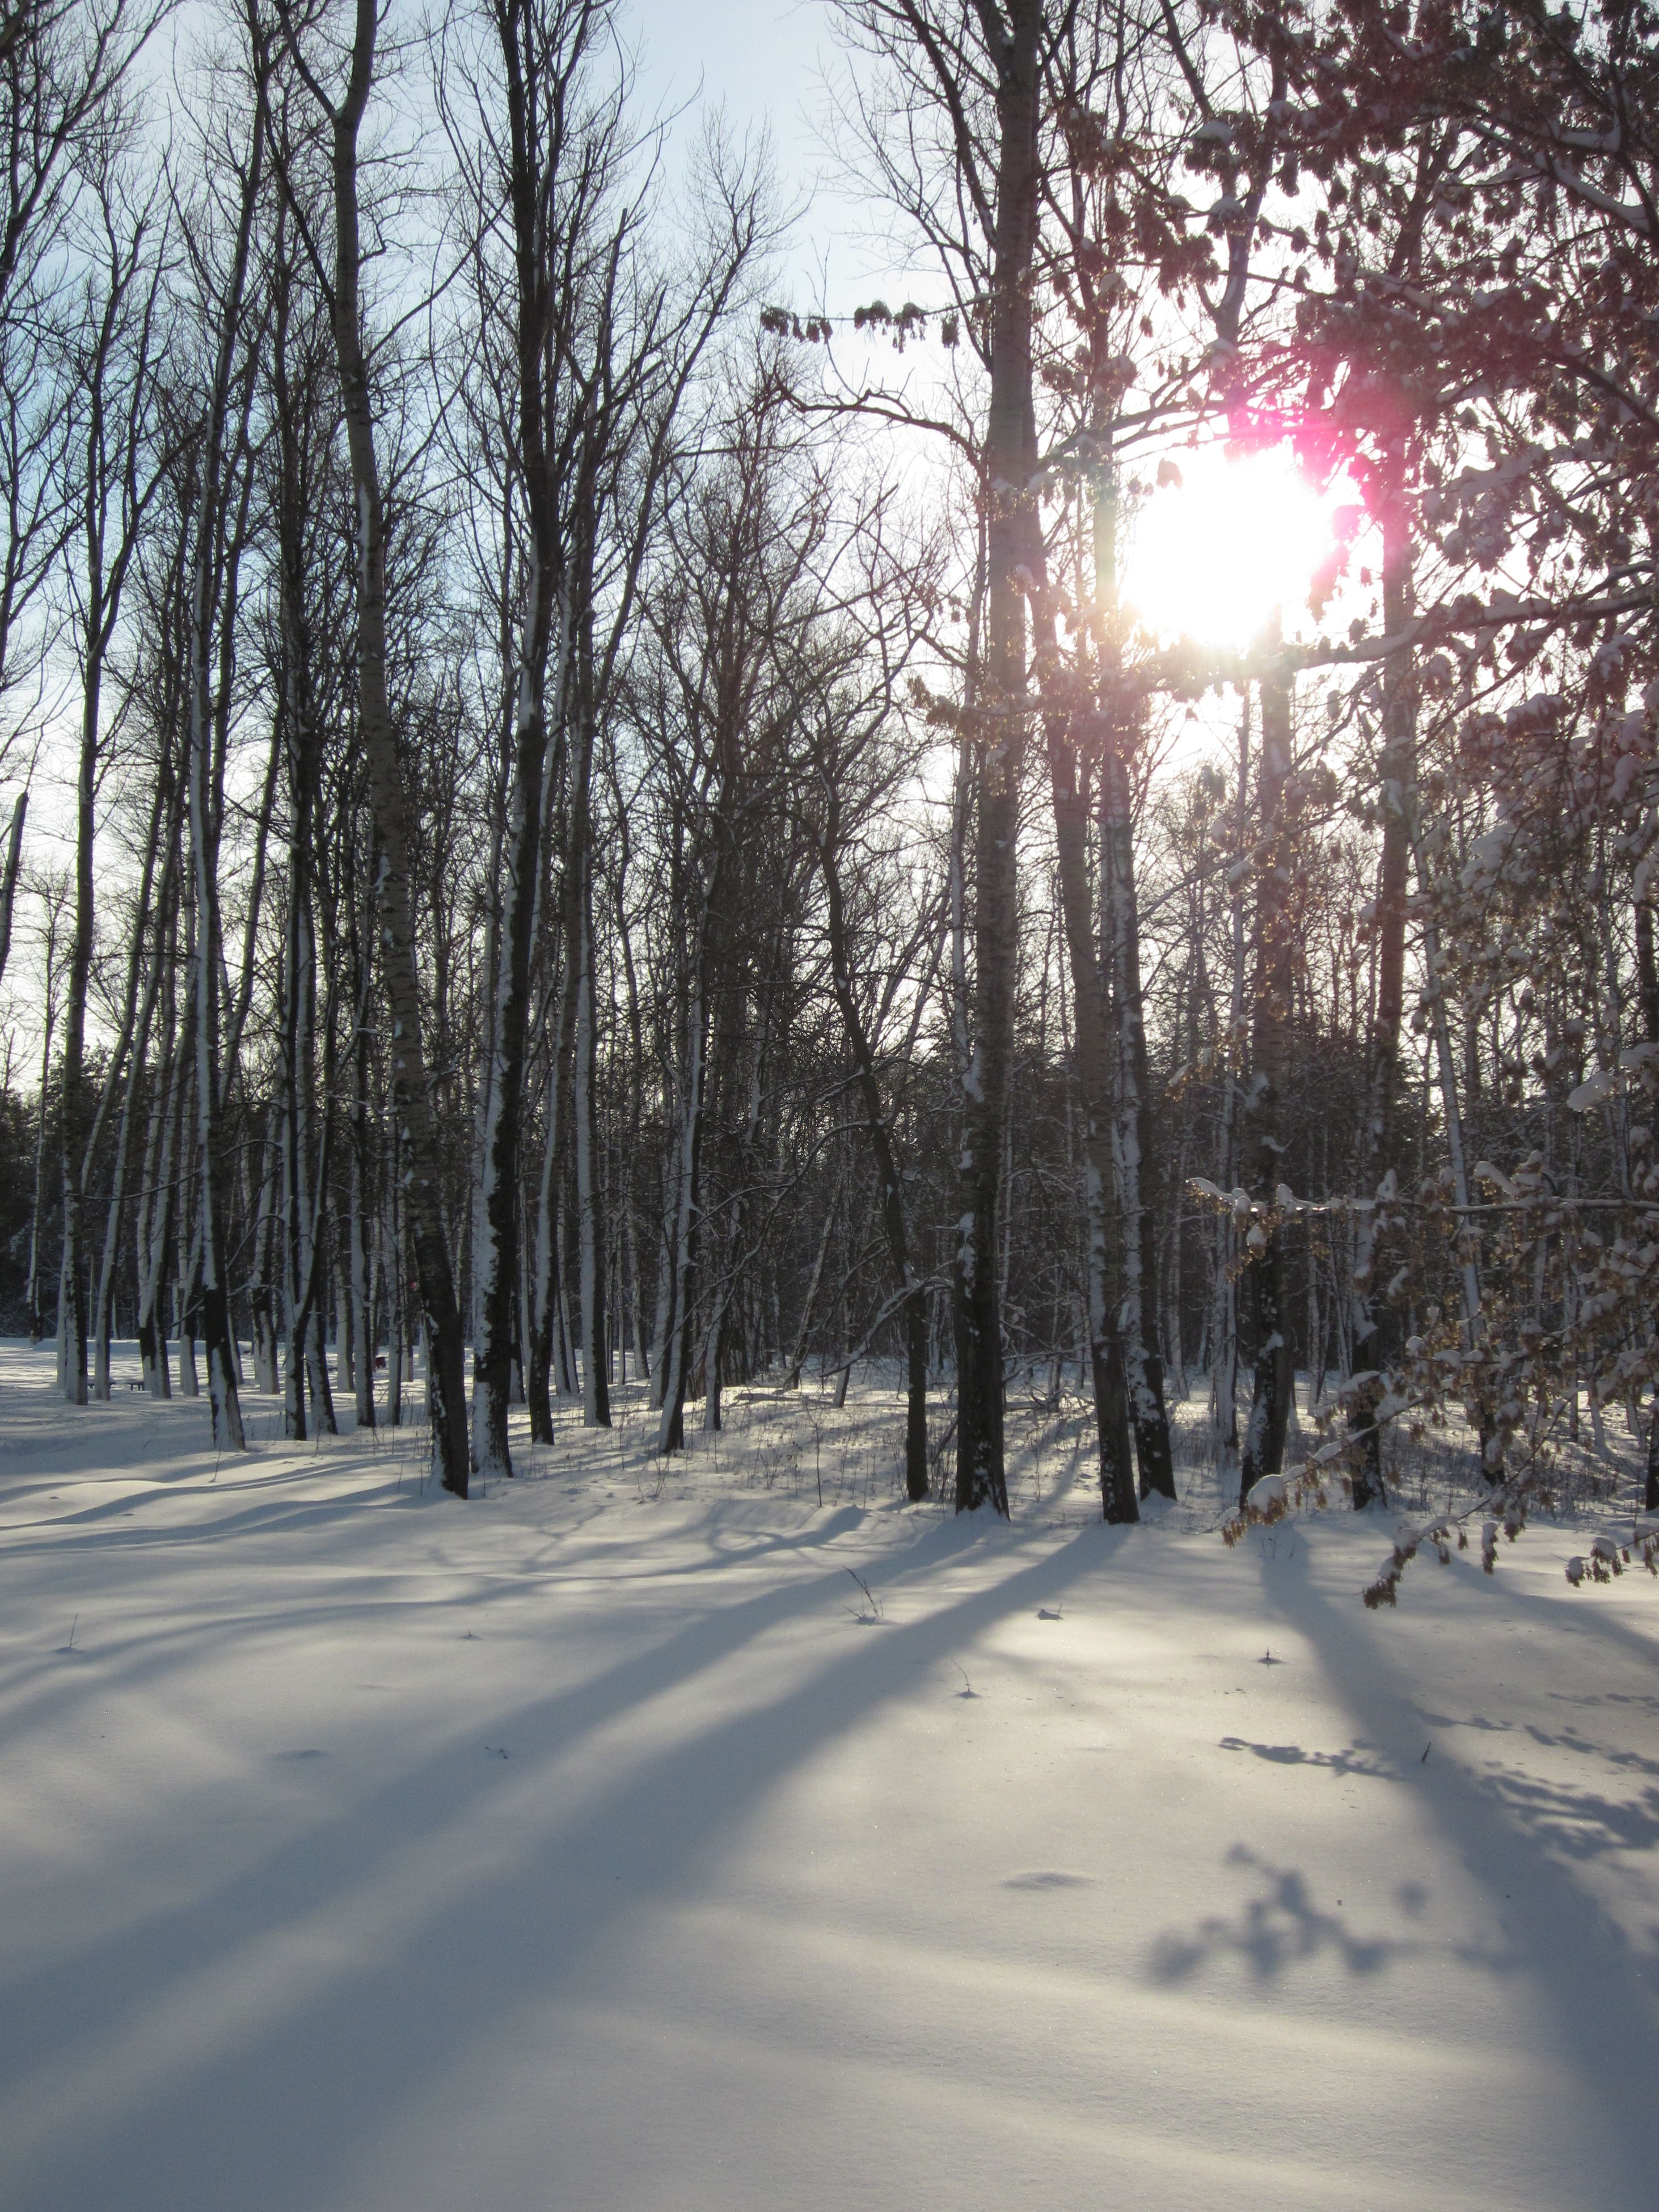 snow, winter, tree, cold temperature, sun, season, sunlight, tranquility, nature, the way forward, bare tree, tranquil scene, sunbeam, beauty in nature, frozen, scenics, covering, weather, lens flare, tree trunk